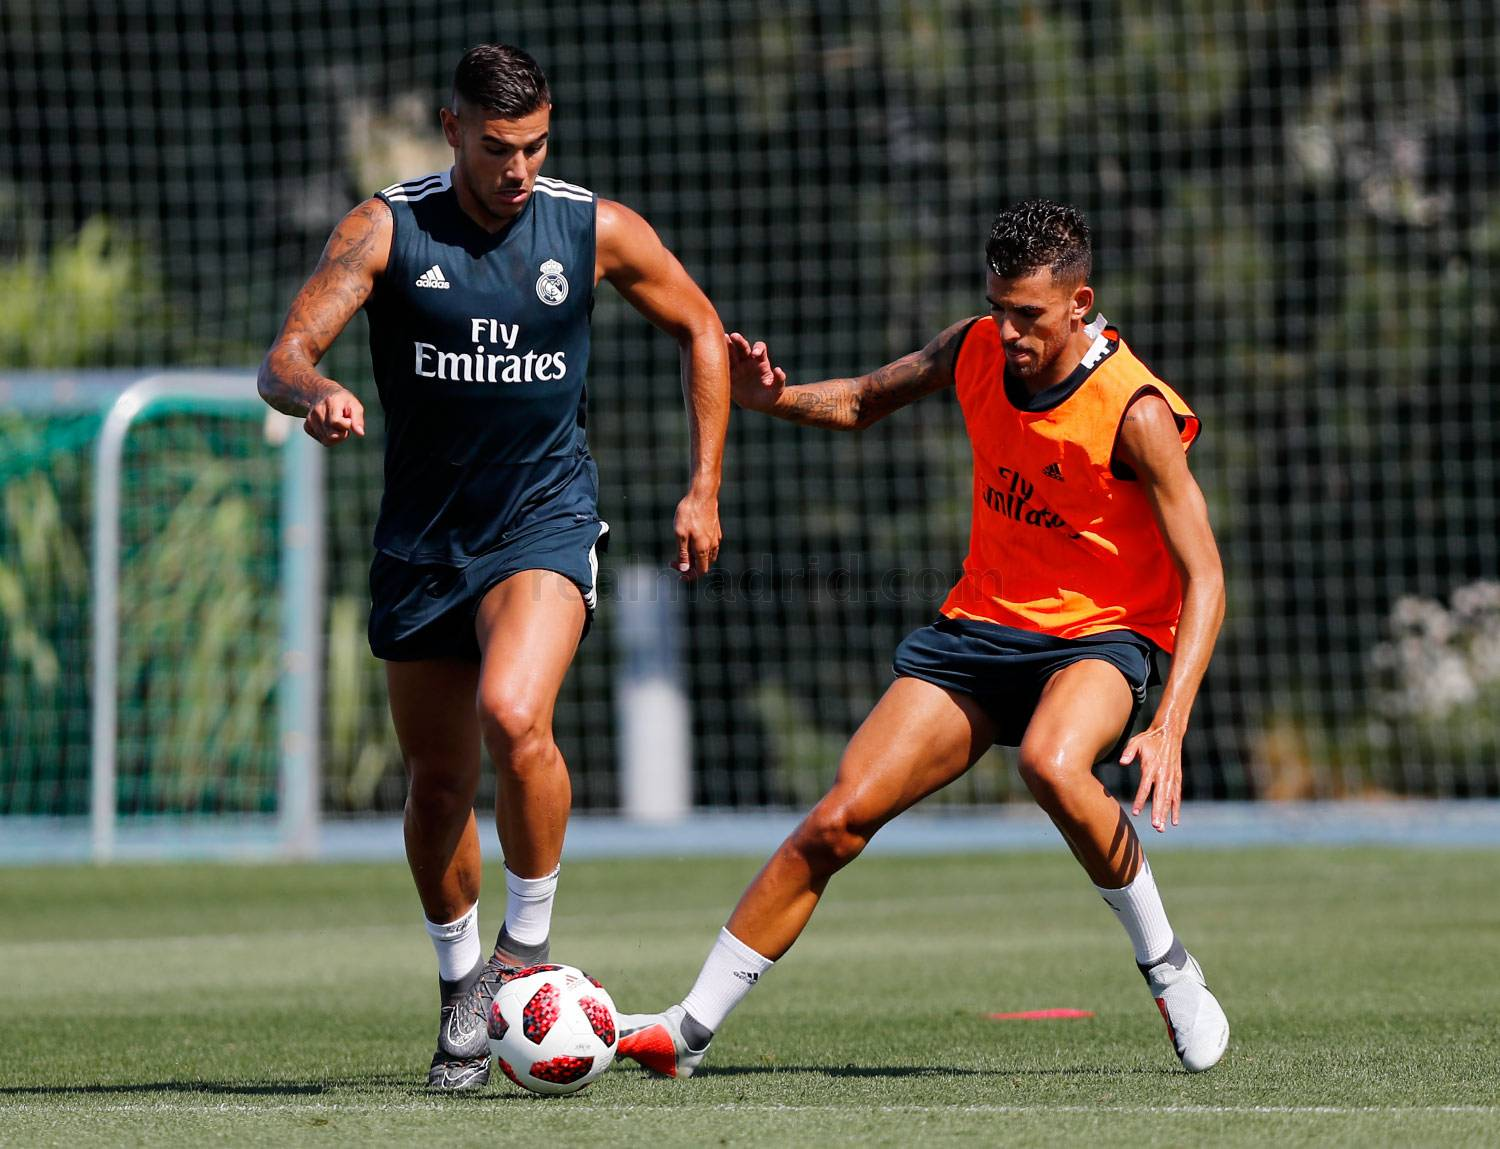 Real Madrid - Entrenamiento del Real Madrid - 20-07-2018